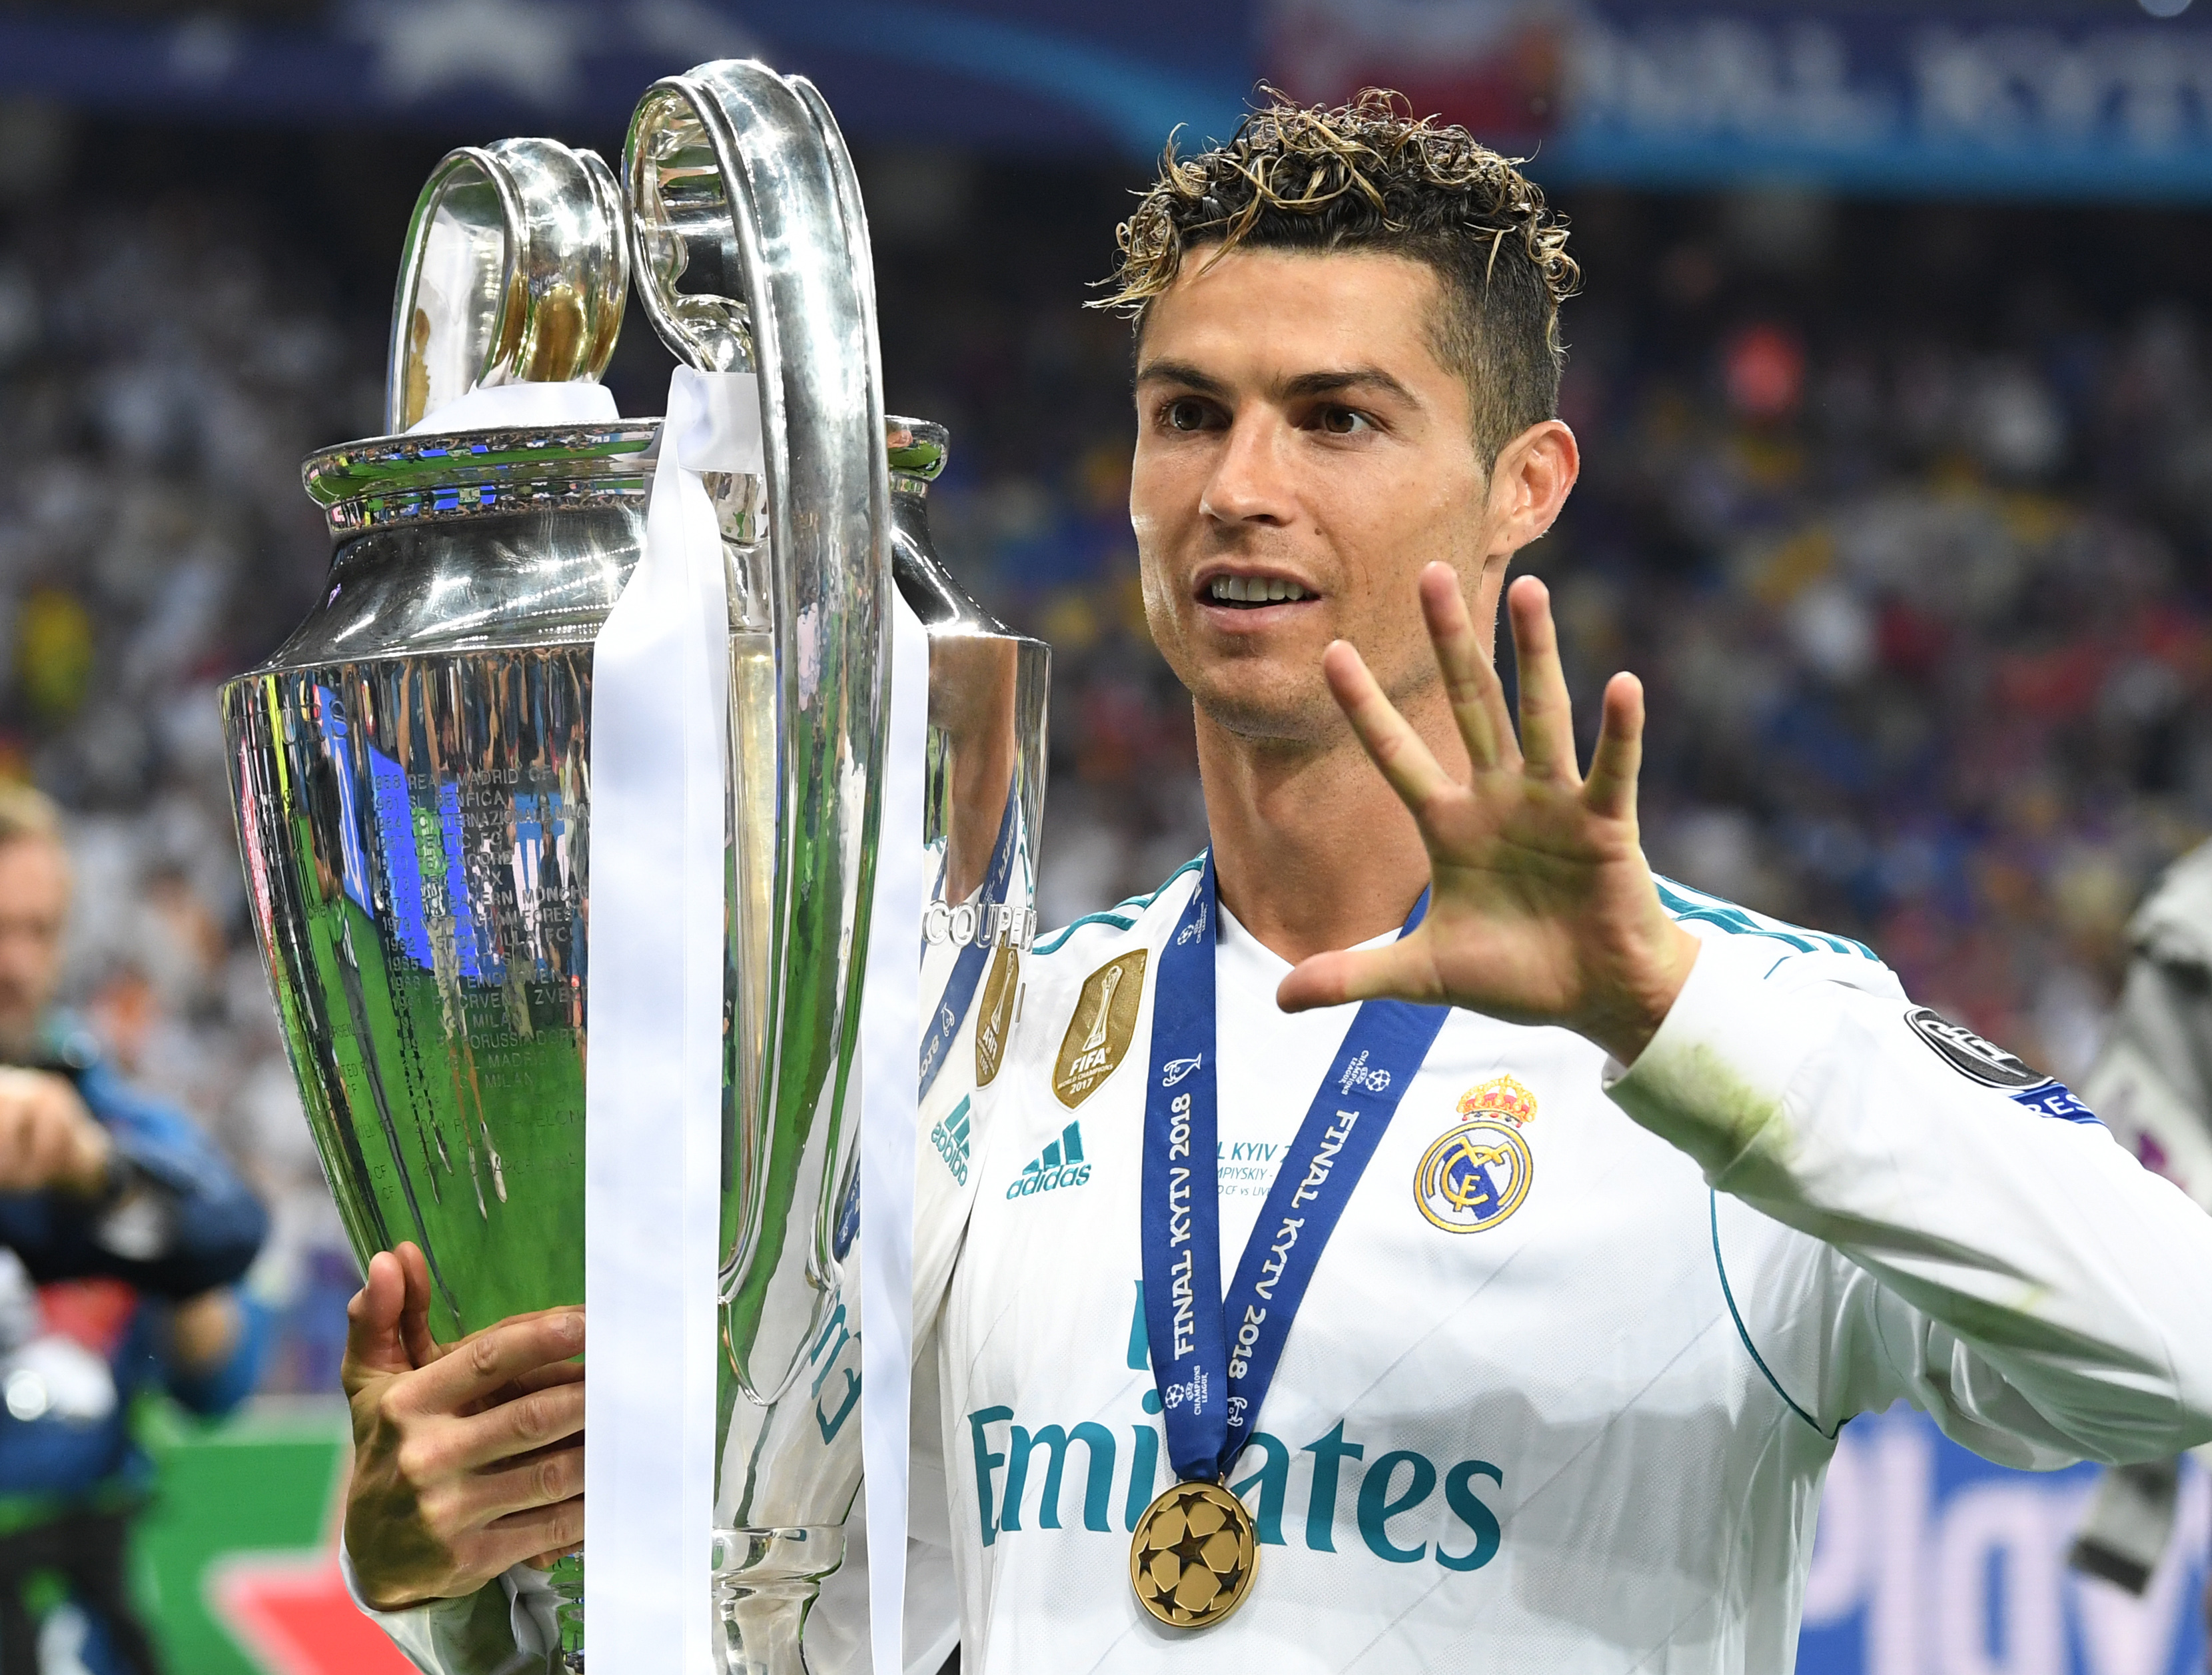 Ronaldo lets everyone know how many times he's won the title. Image: PA Images